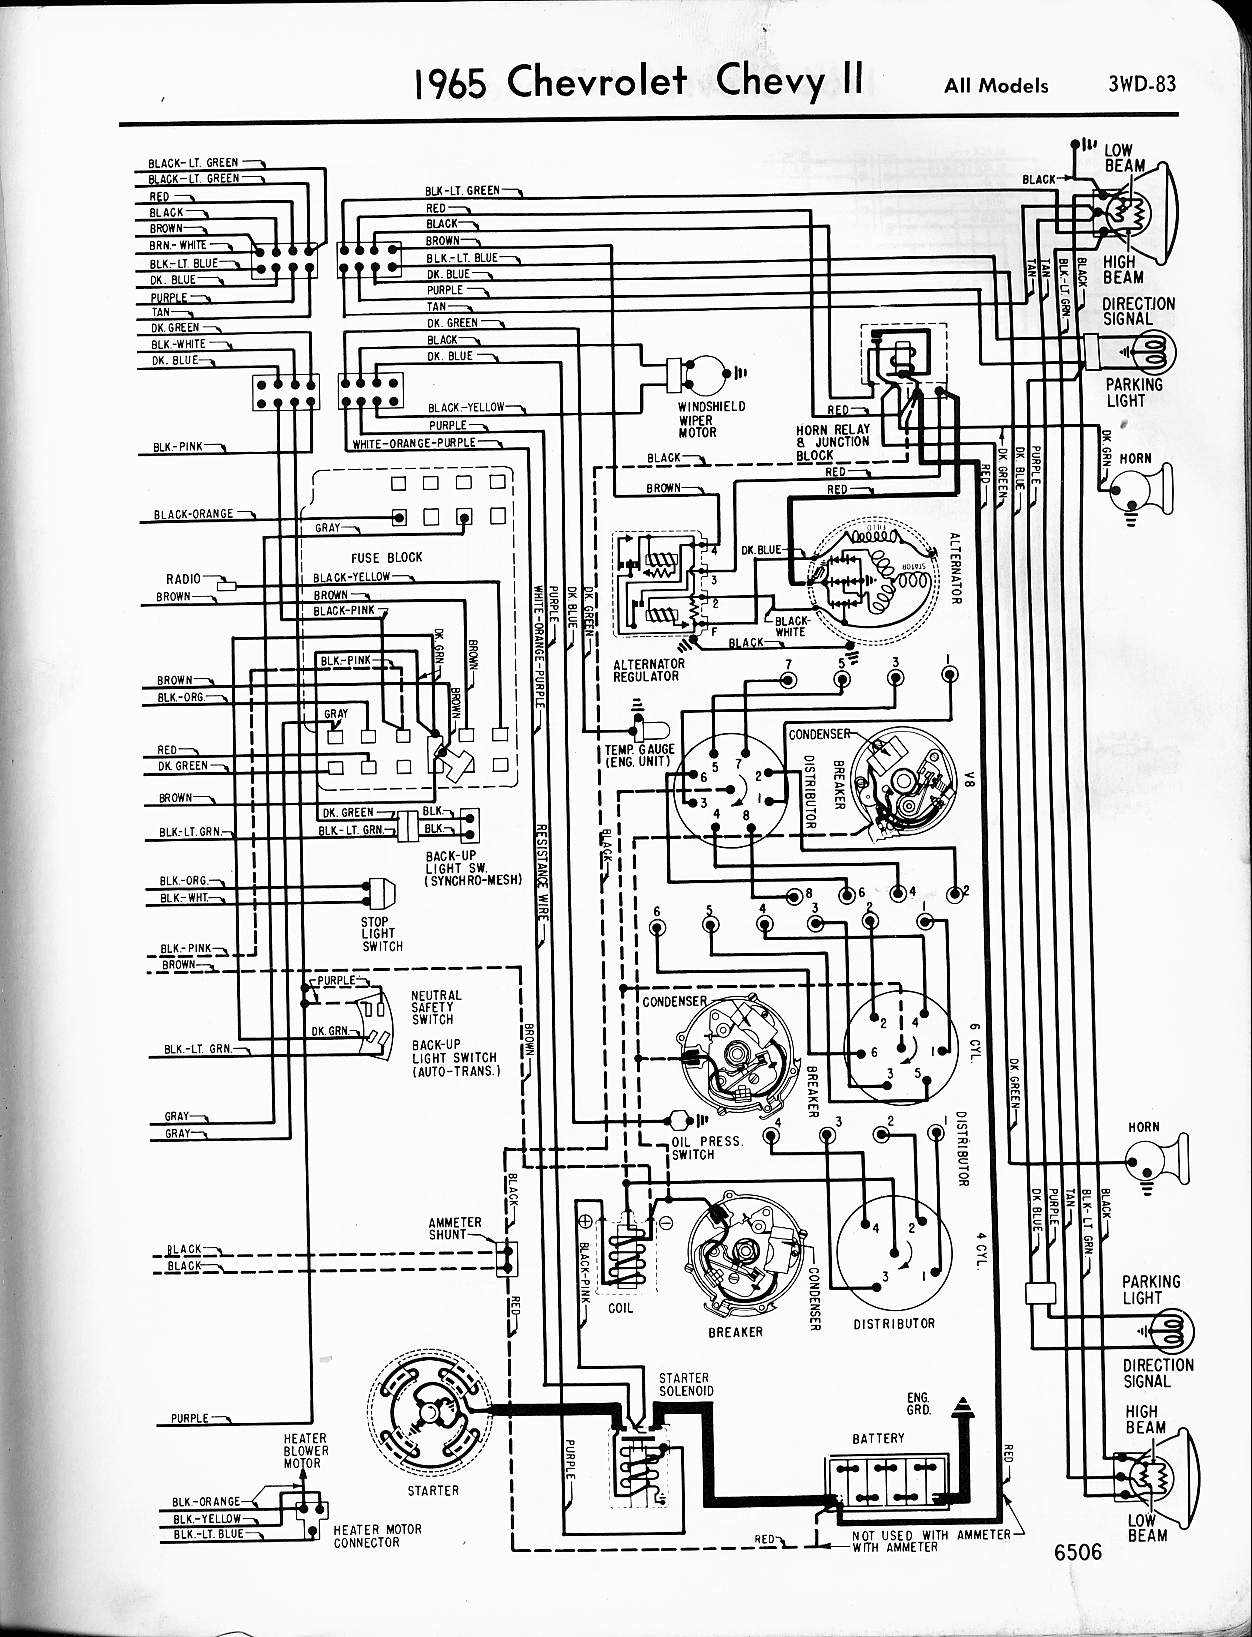 MWireChev65_3WD 083 57 65 chevy wiring diagrams 1966 chevy impala wiring diagram at alyssarenee.co